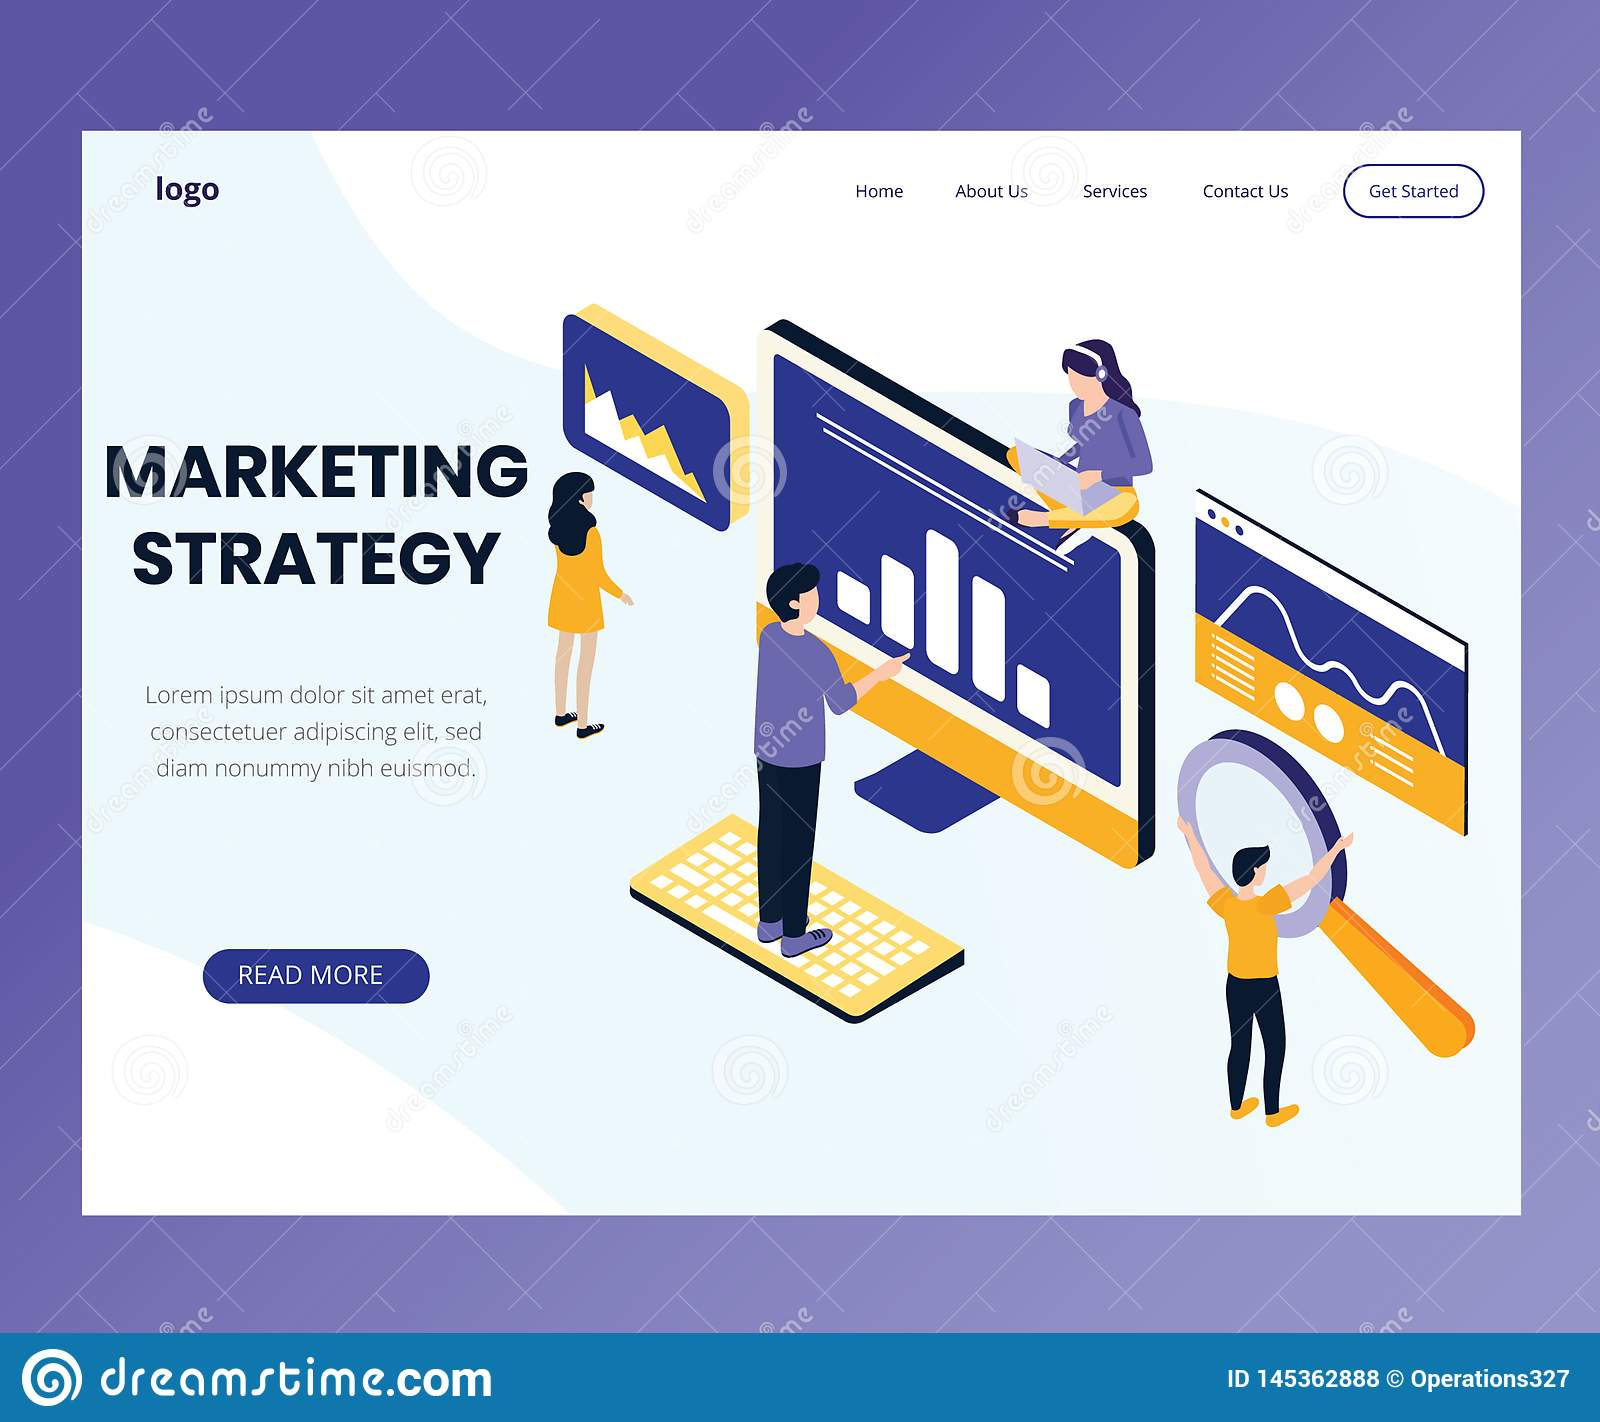 Marketing Strategy design Where people are working Isometric Artwork Concept